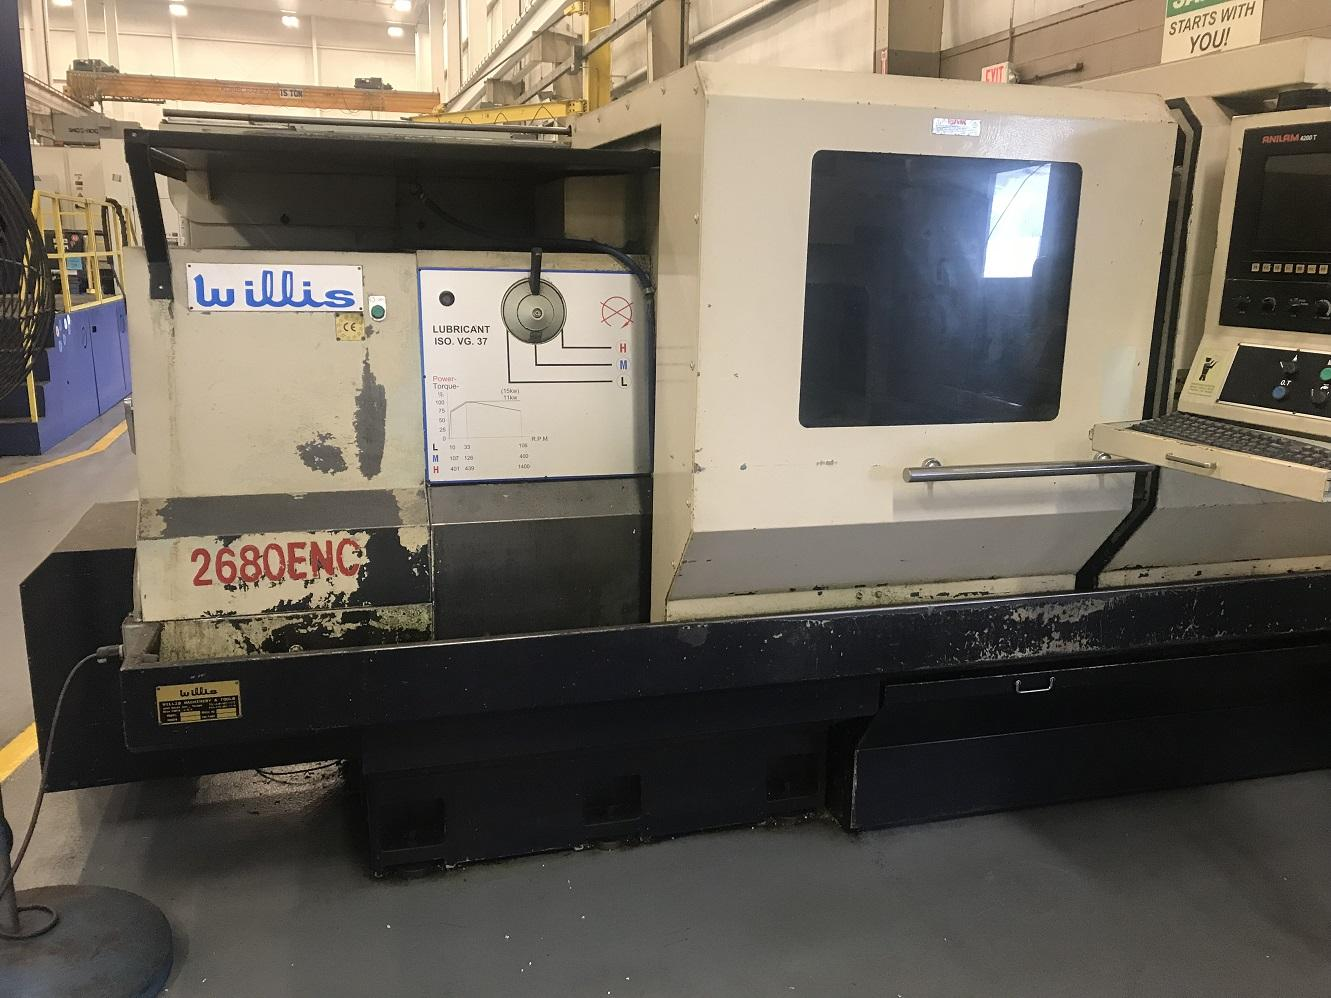 "Willis Model 2680 ENC 26"" x 80"" CNC Flatbed Lathe"